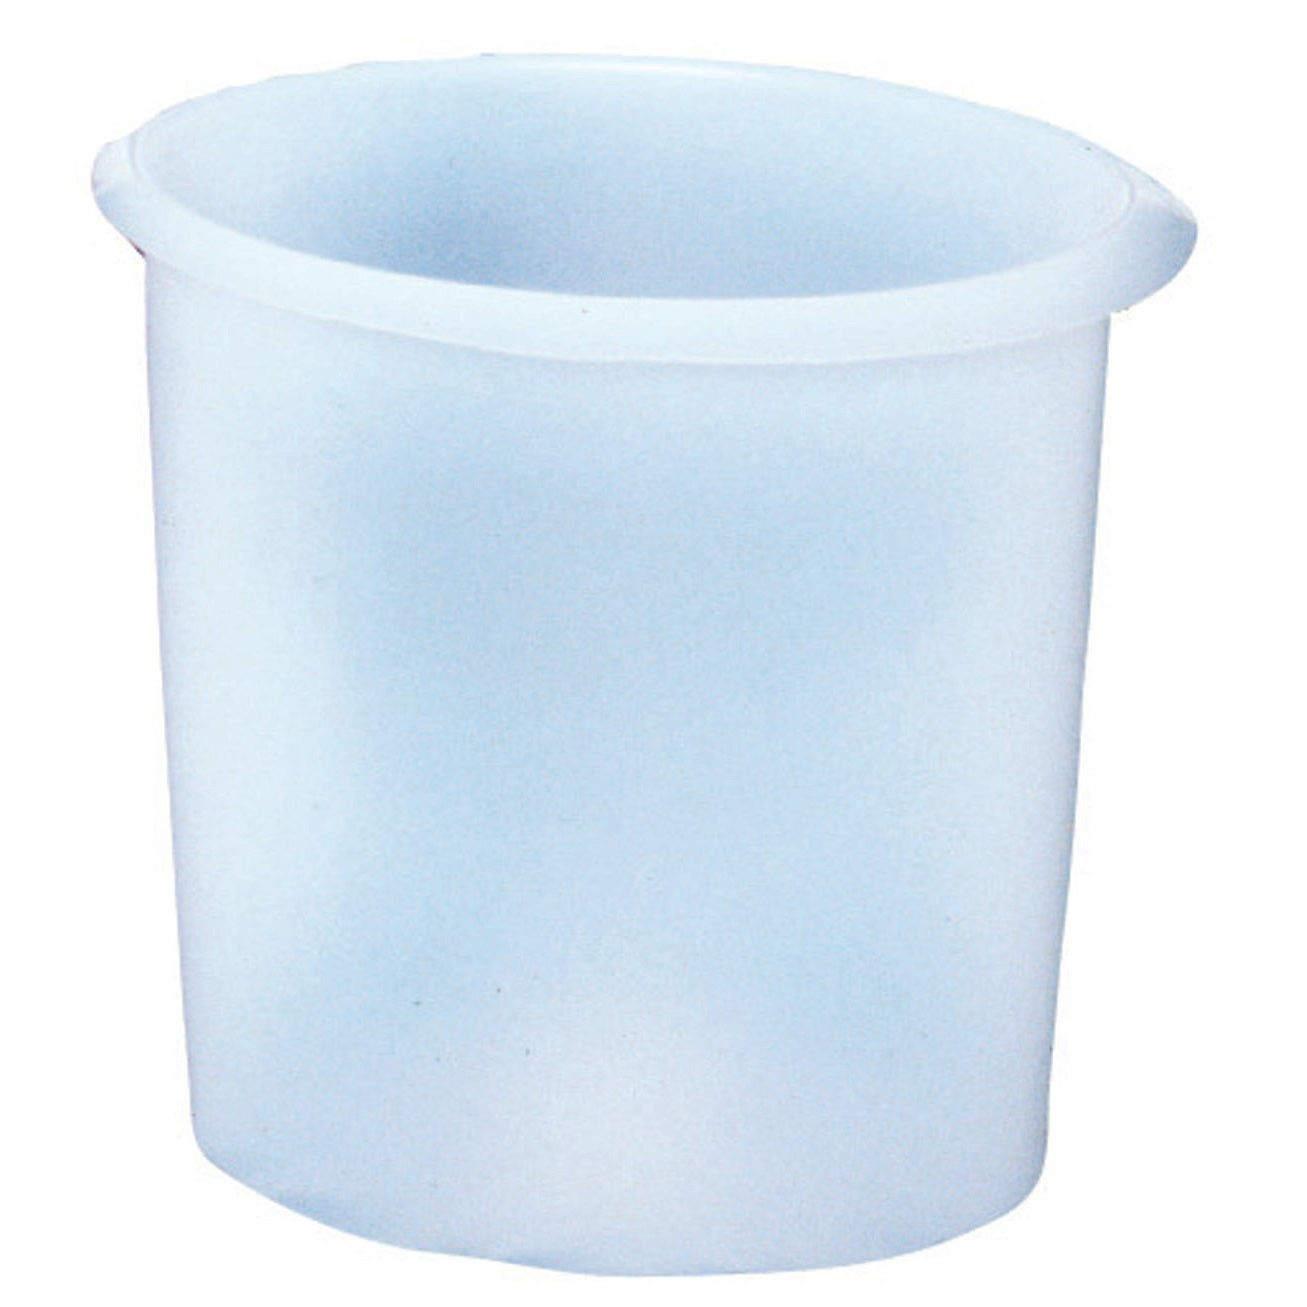 Encore 05115-201329 5 Quart Pail Liner (Buckets, Guards & Guides)